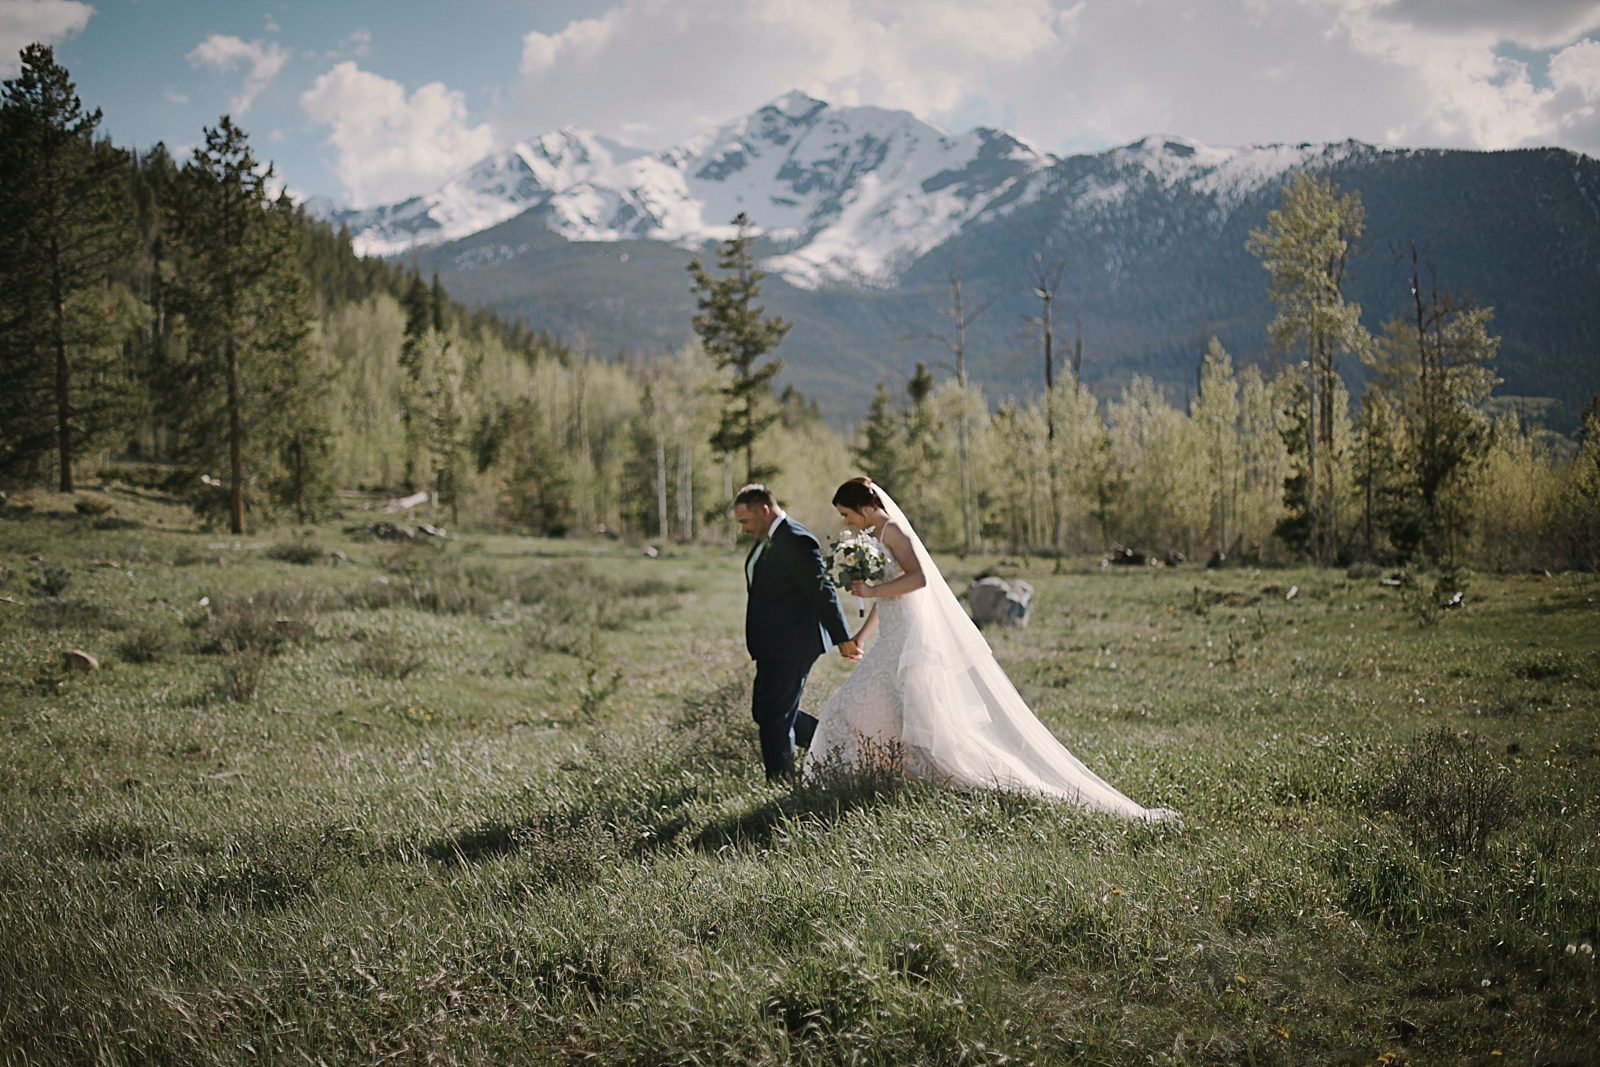 bride and groom at agape outpost, the church at agape outpost wedding, breckenridge colorado wedding, breckenridge colorado wedding photographer, agape outpost wedding photographer